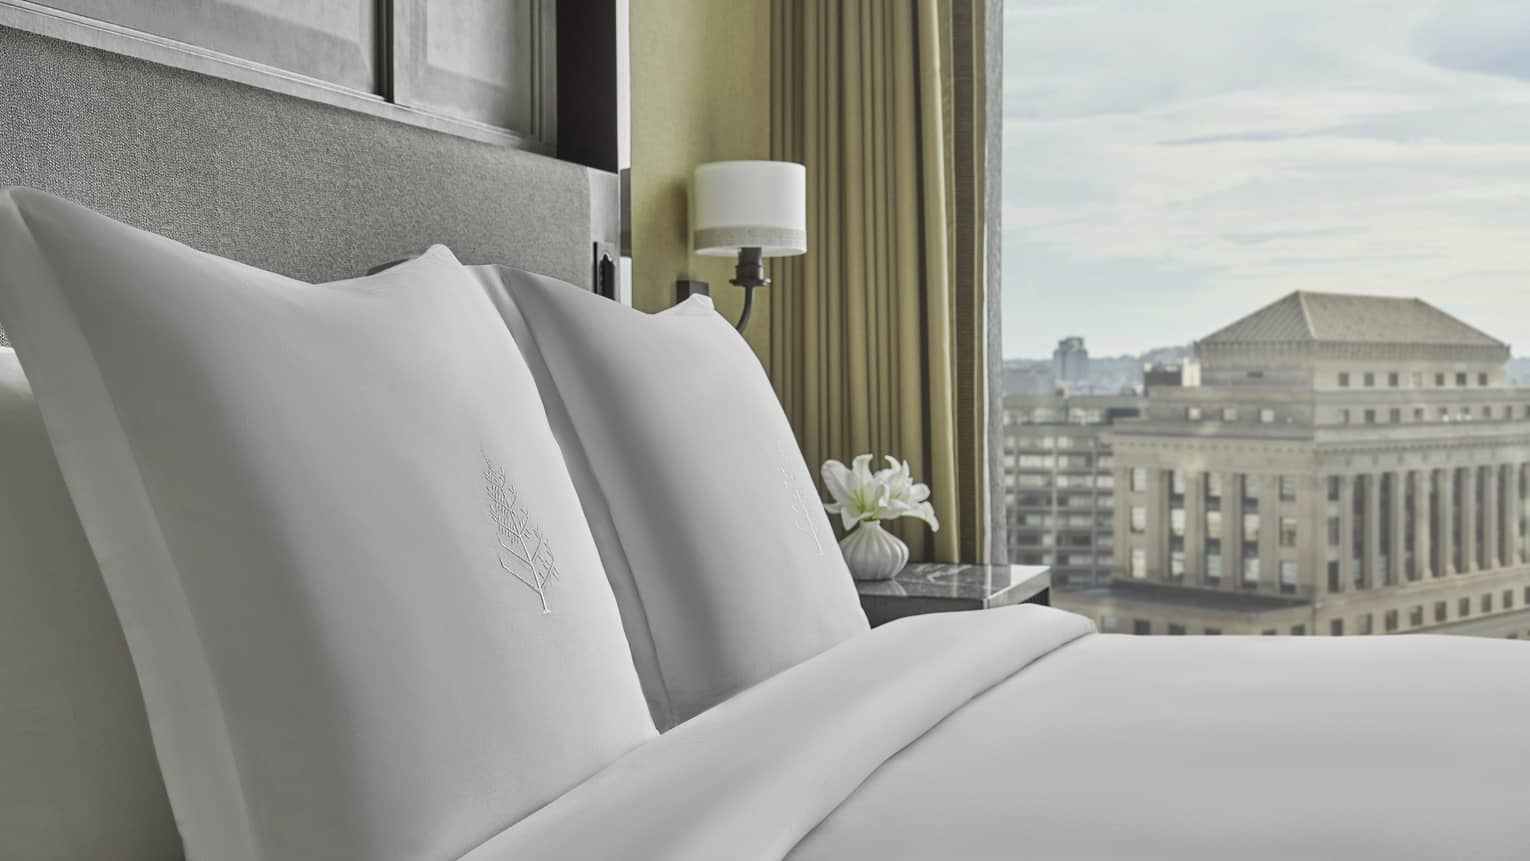 The bed is made with white linens in the Executive Suite